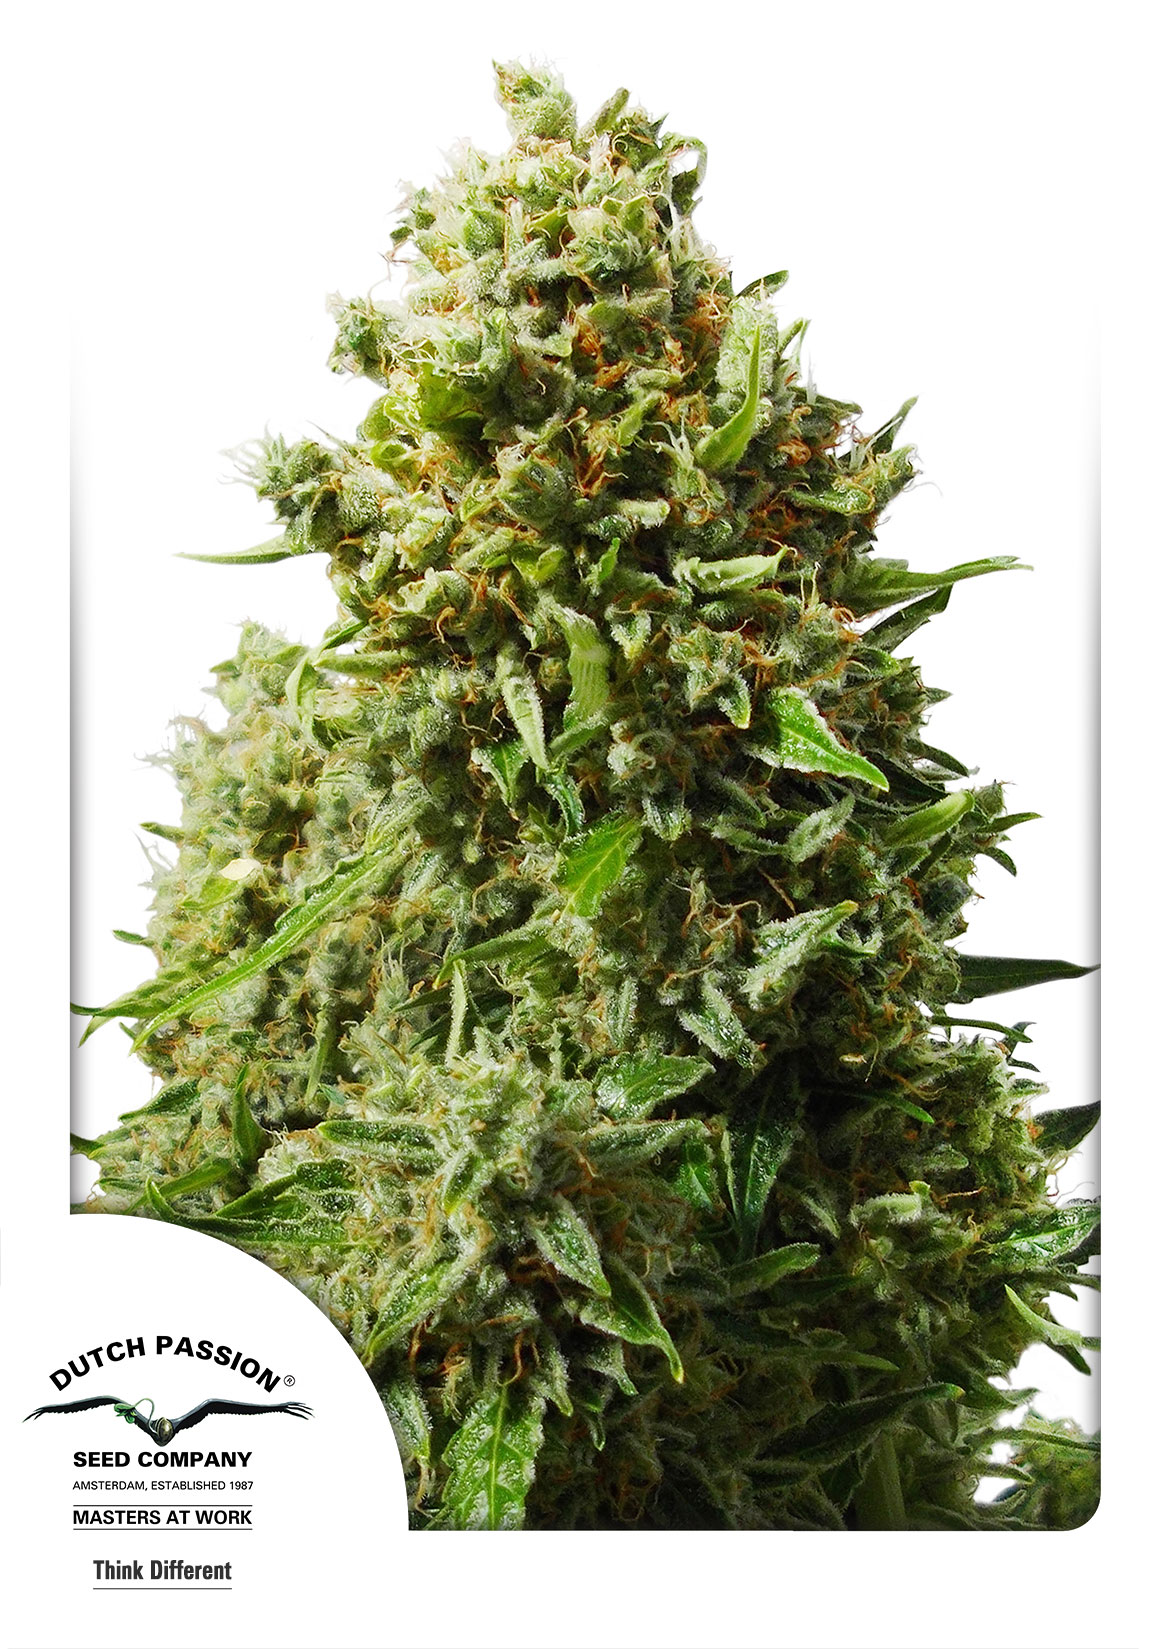 Recenzja Odmiany Think Different od Dutch Passion, Dutch Seeds